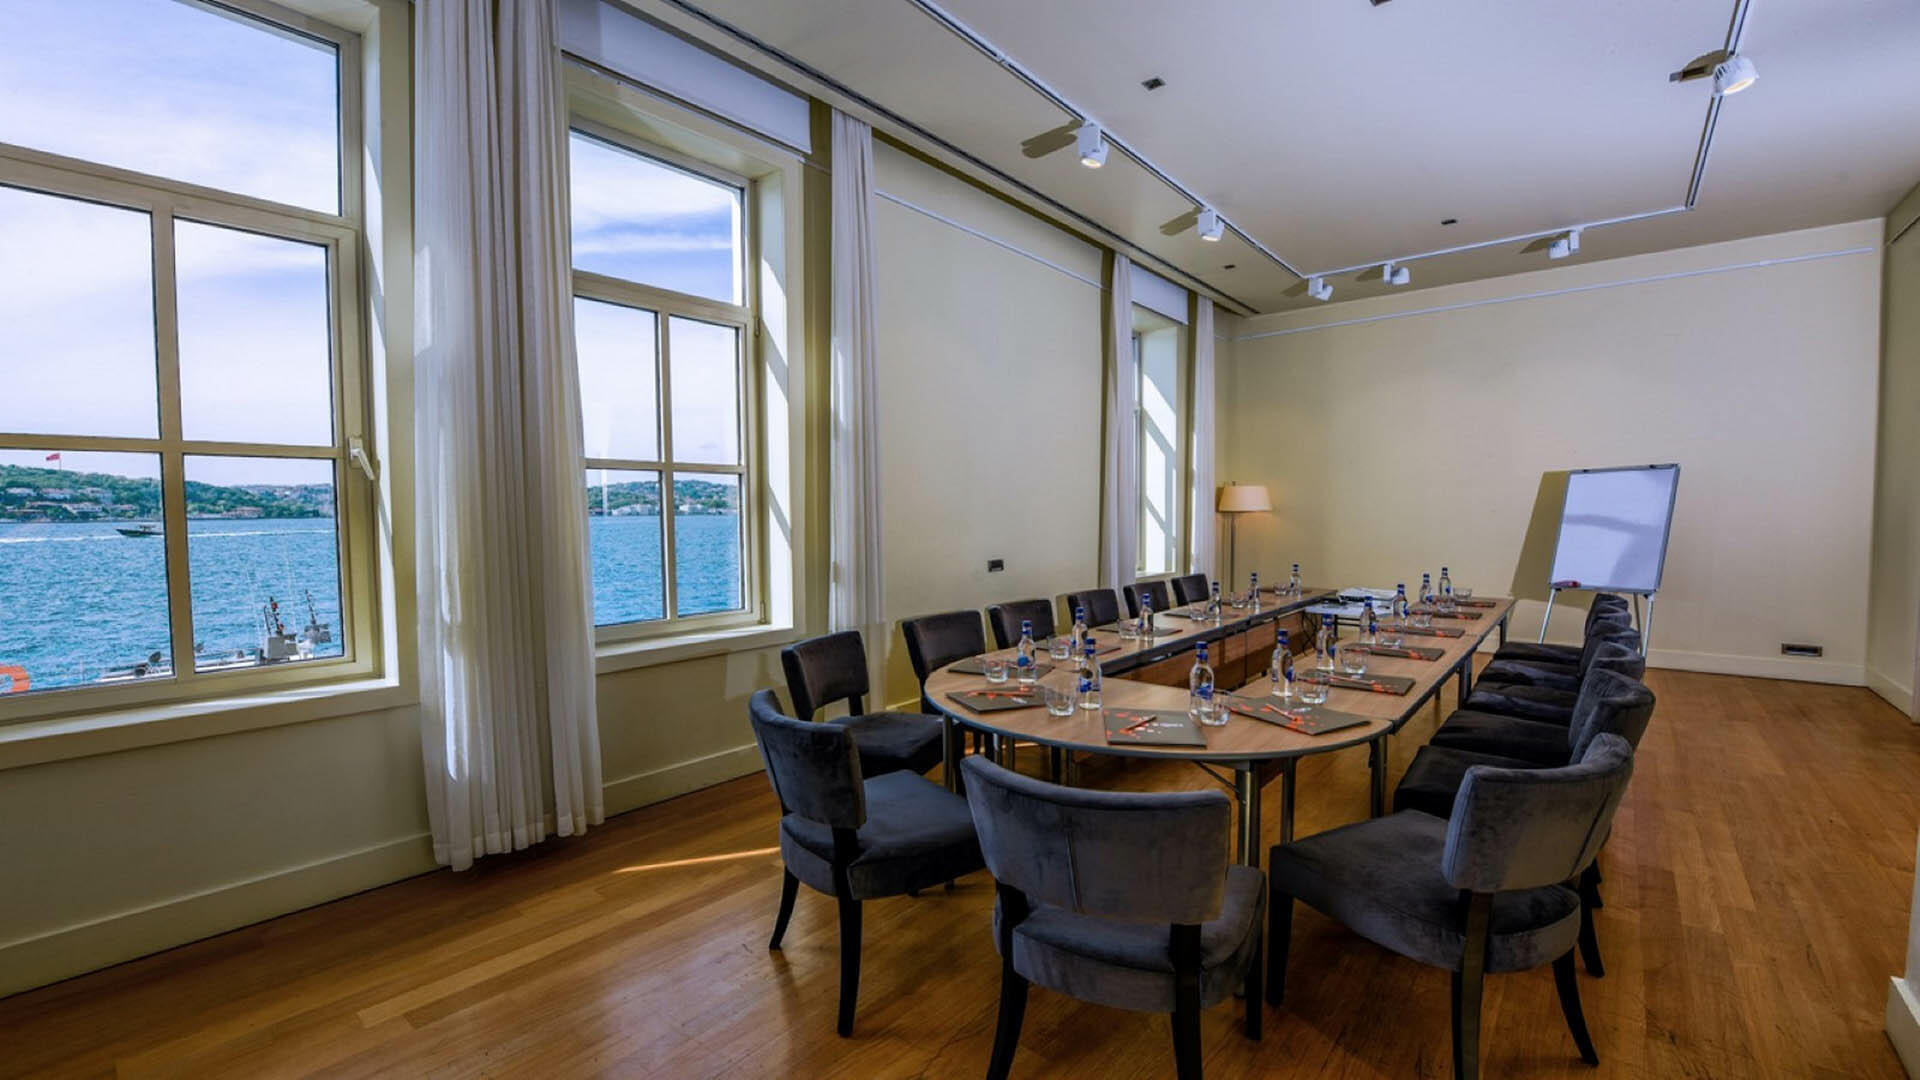 Meeting room at A'jia Hotel Istanbul